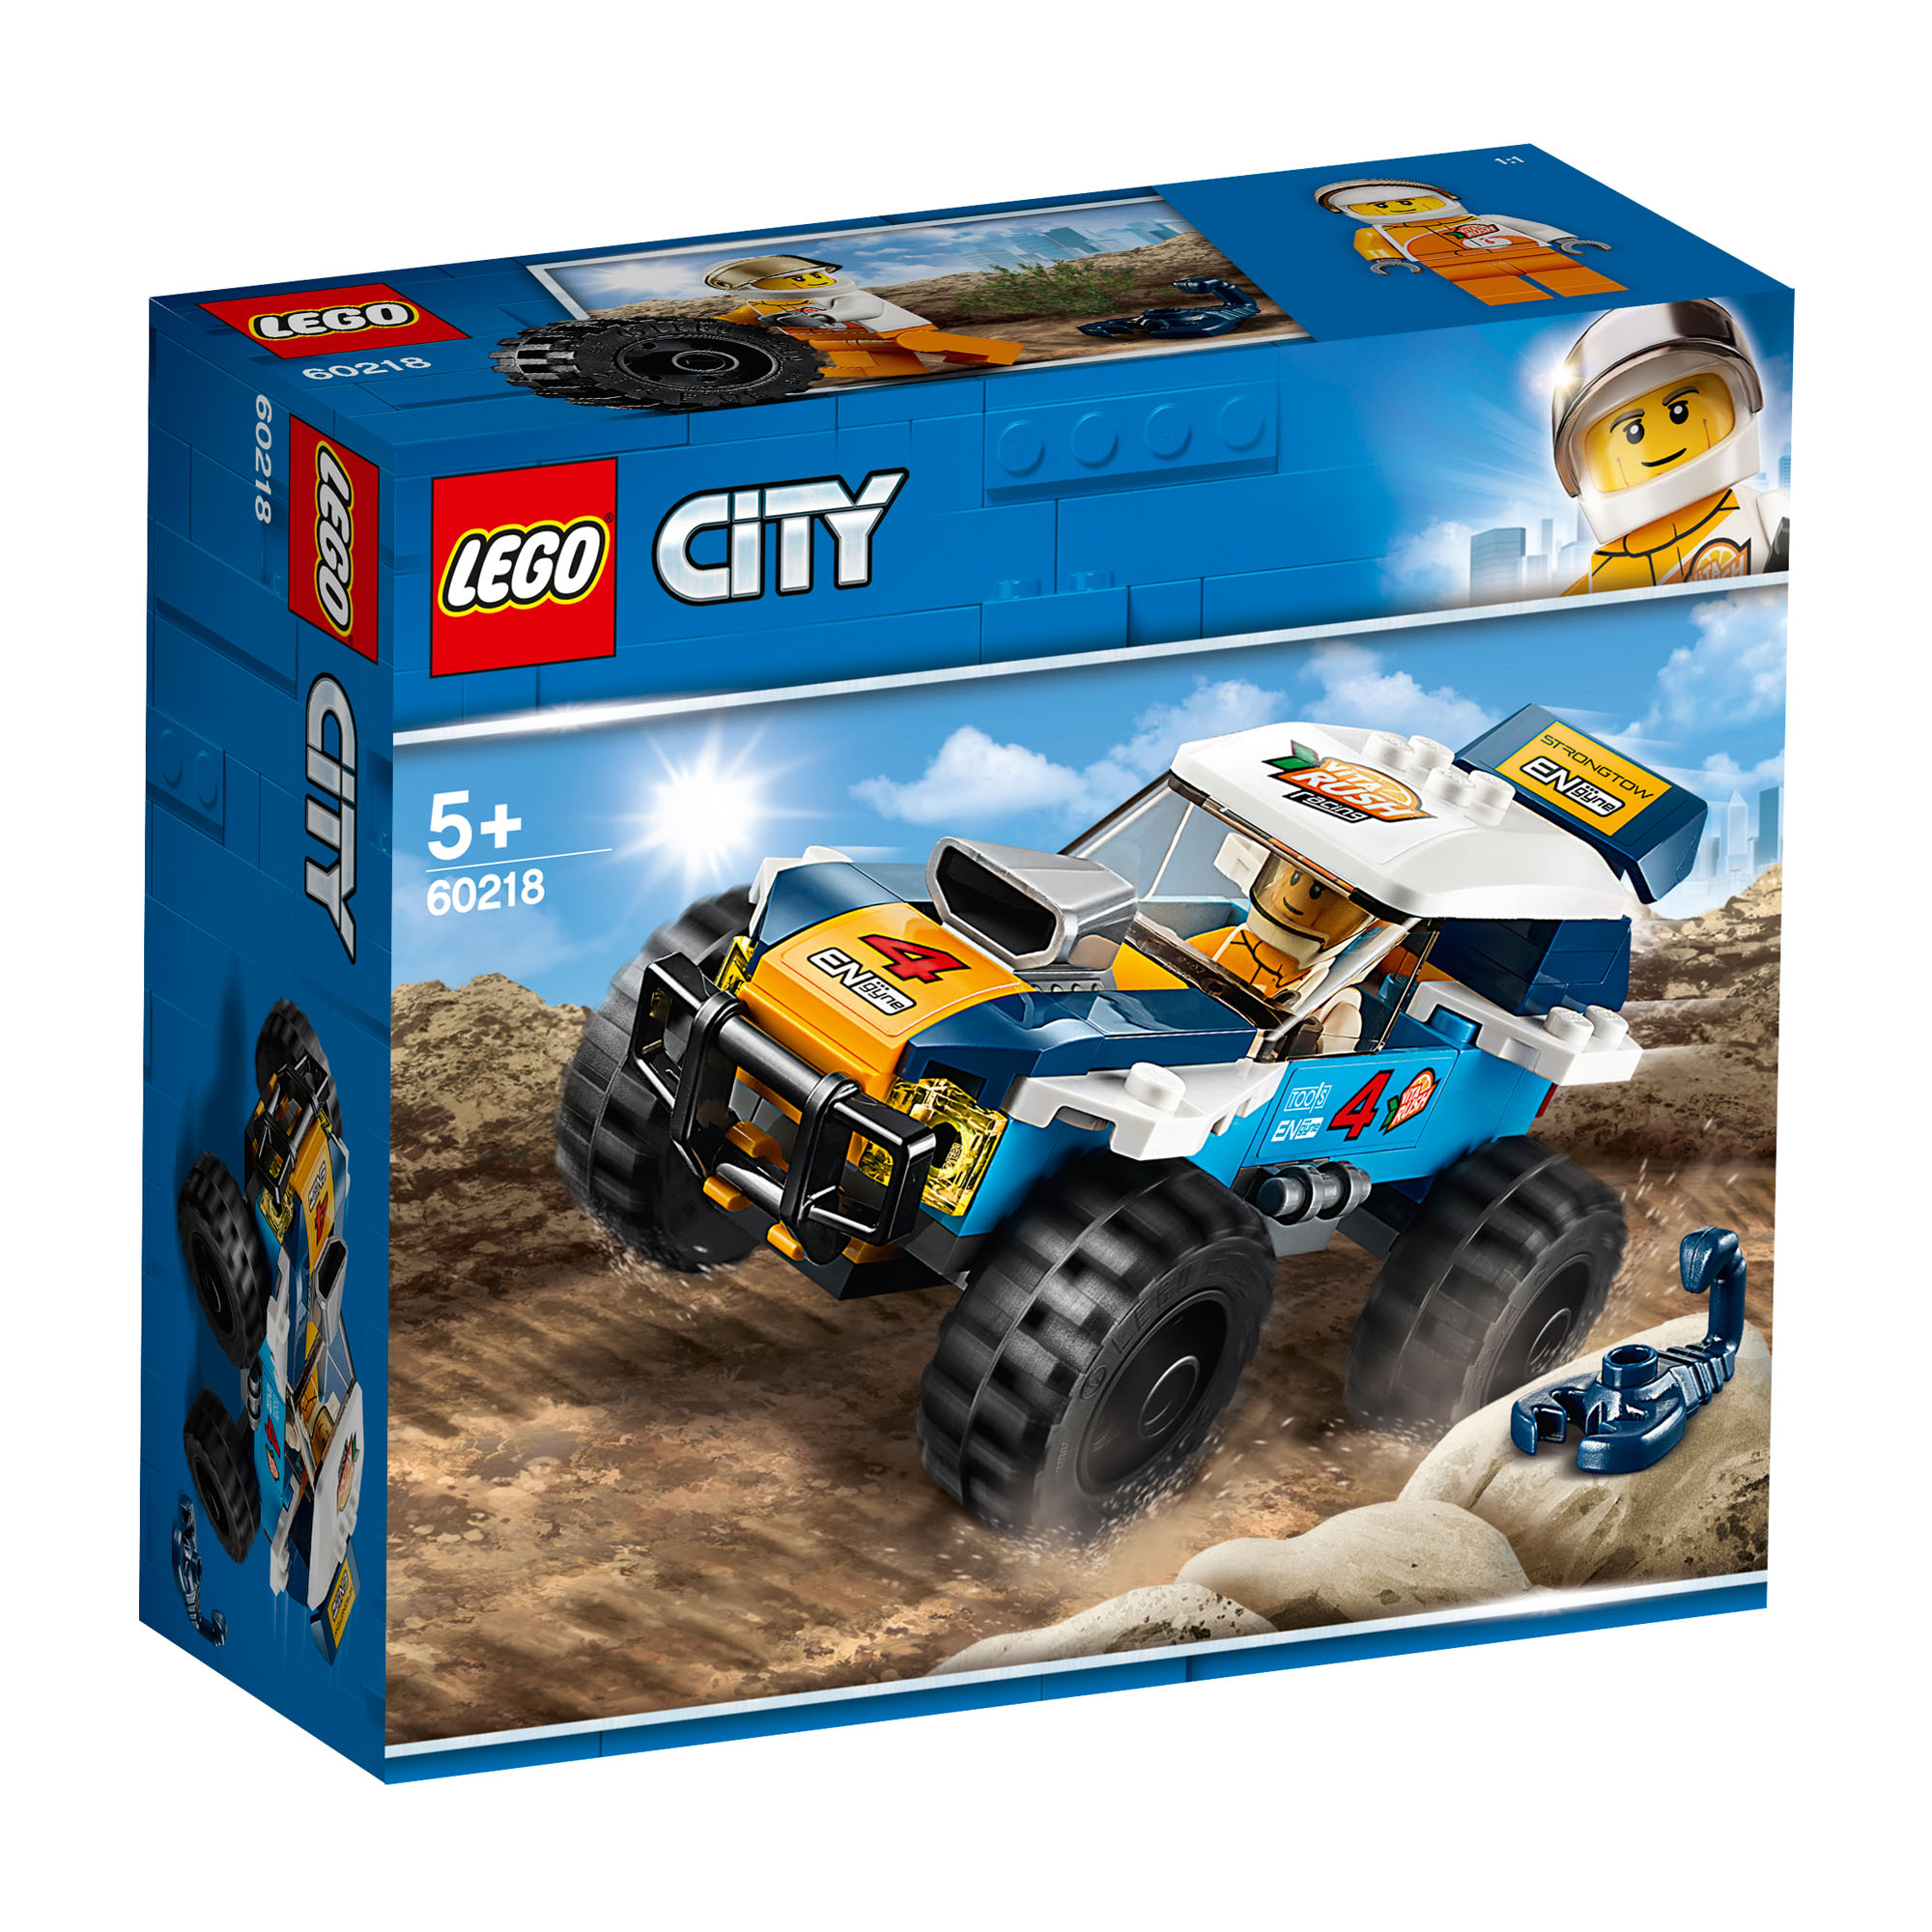 Details about 60218 LEGO CITY Desert Rally Racer 75 Pieces Age 5+ New Release for 2019!